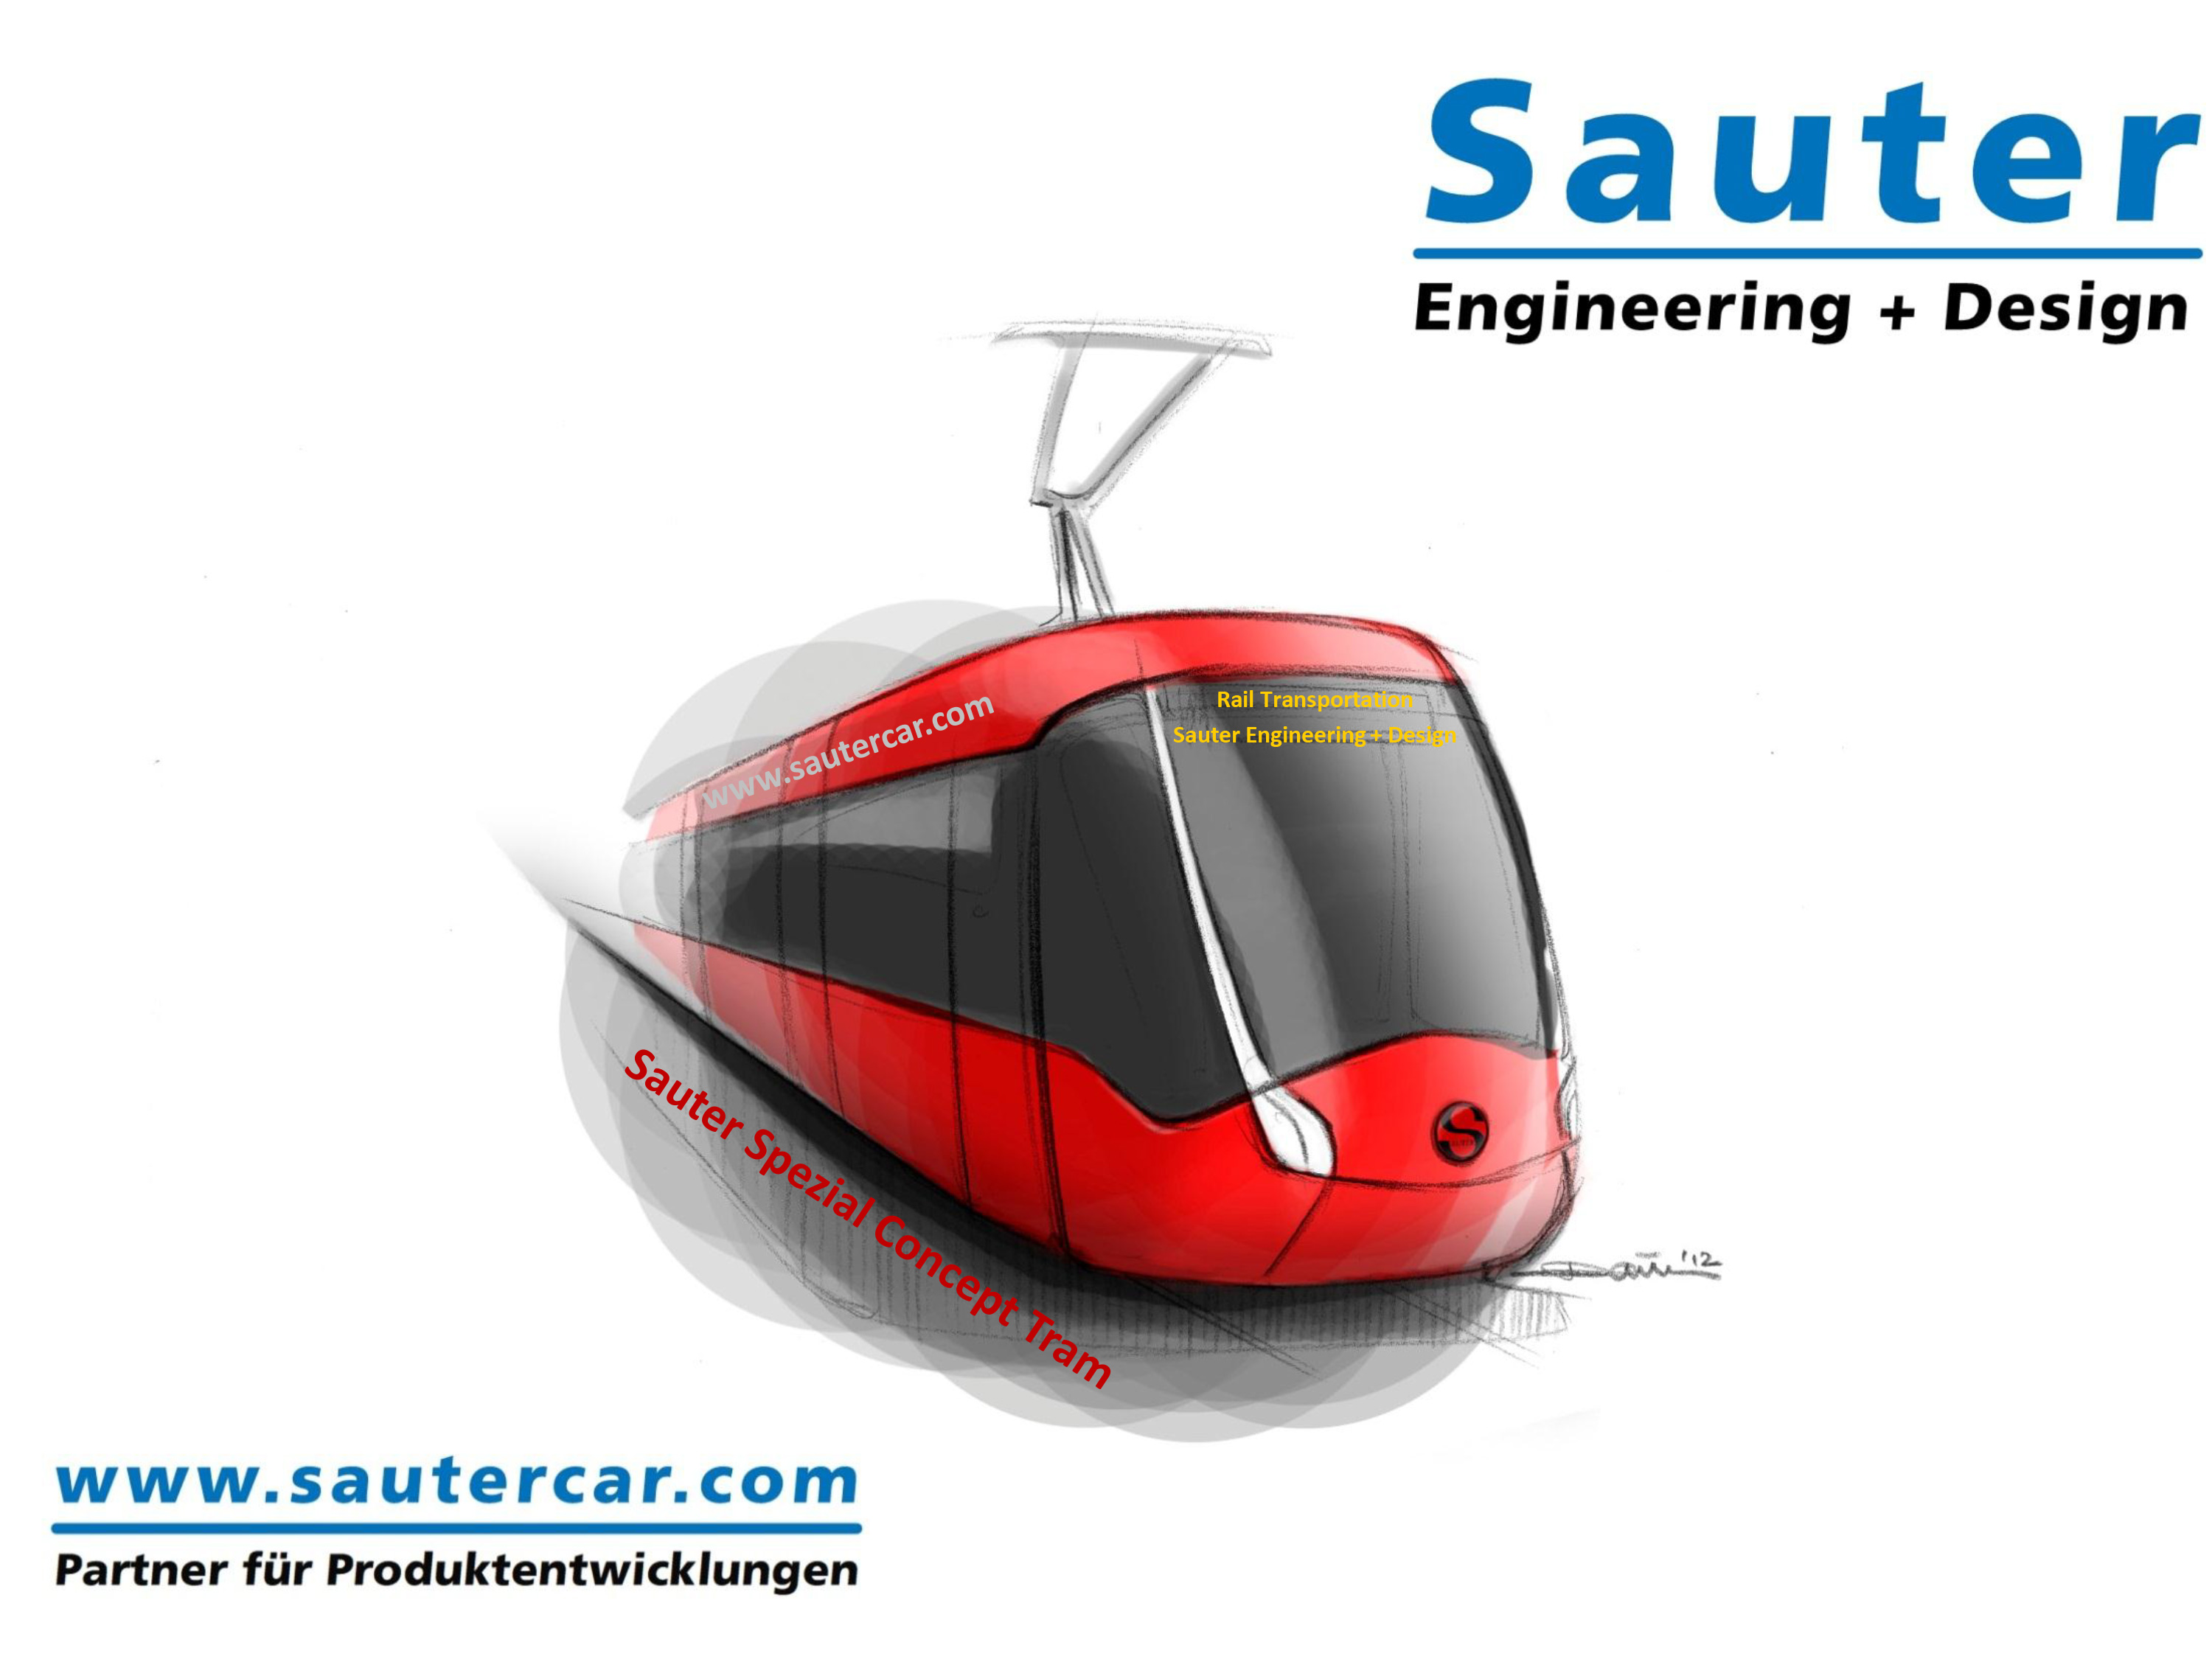 Beispielprojekt-Sauter-Spezial-Train-Tram-Transportation-Design